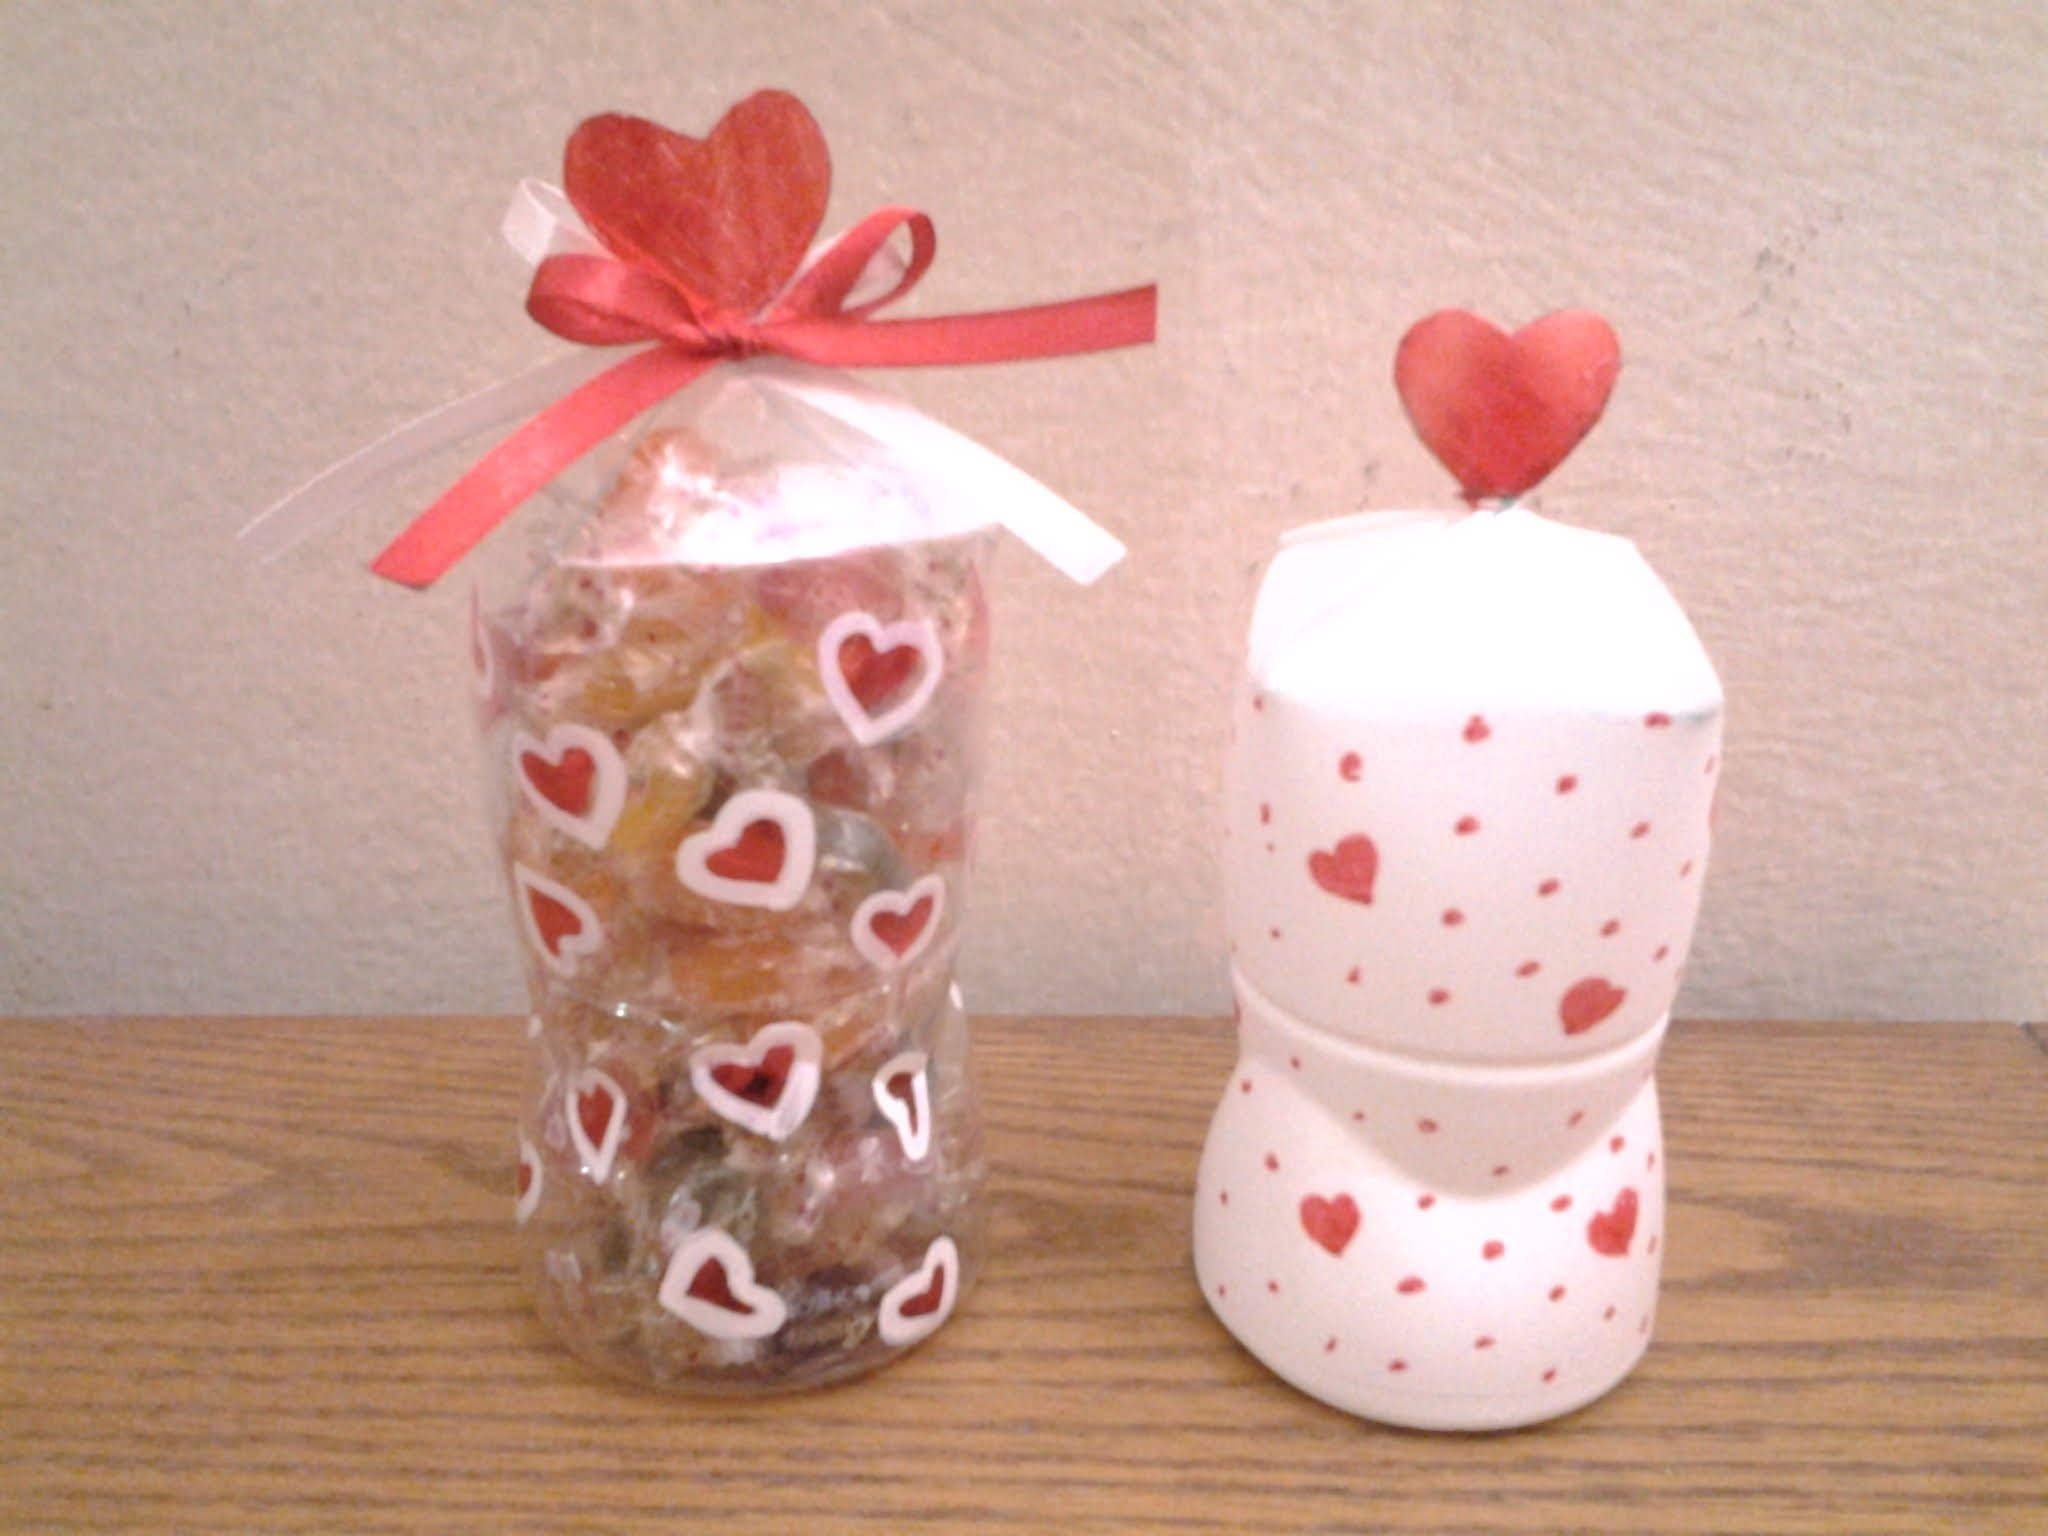 Best out of waste plastic bottle transformed to gift for Crafts from waste plastic bottles